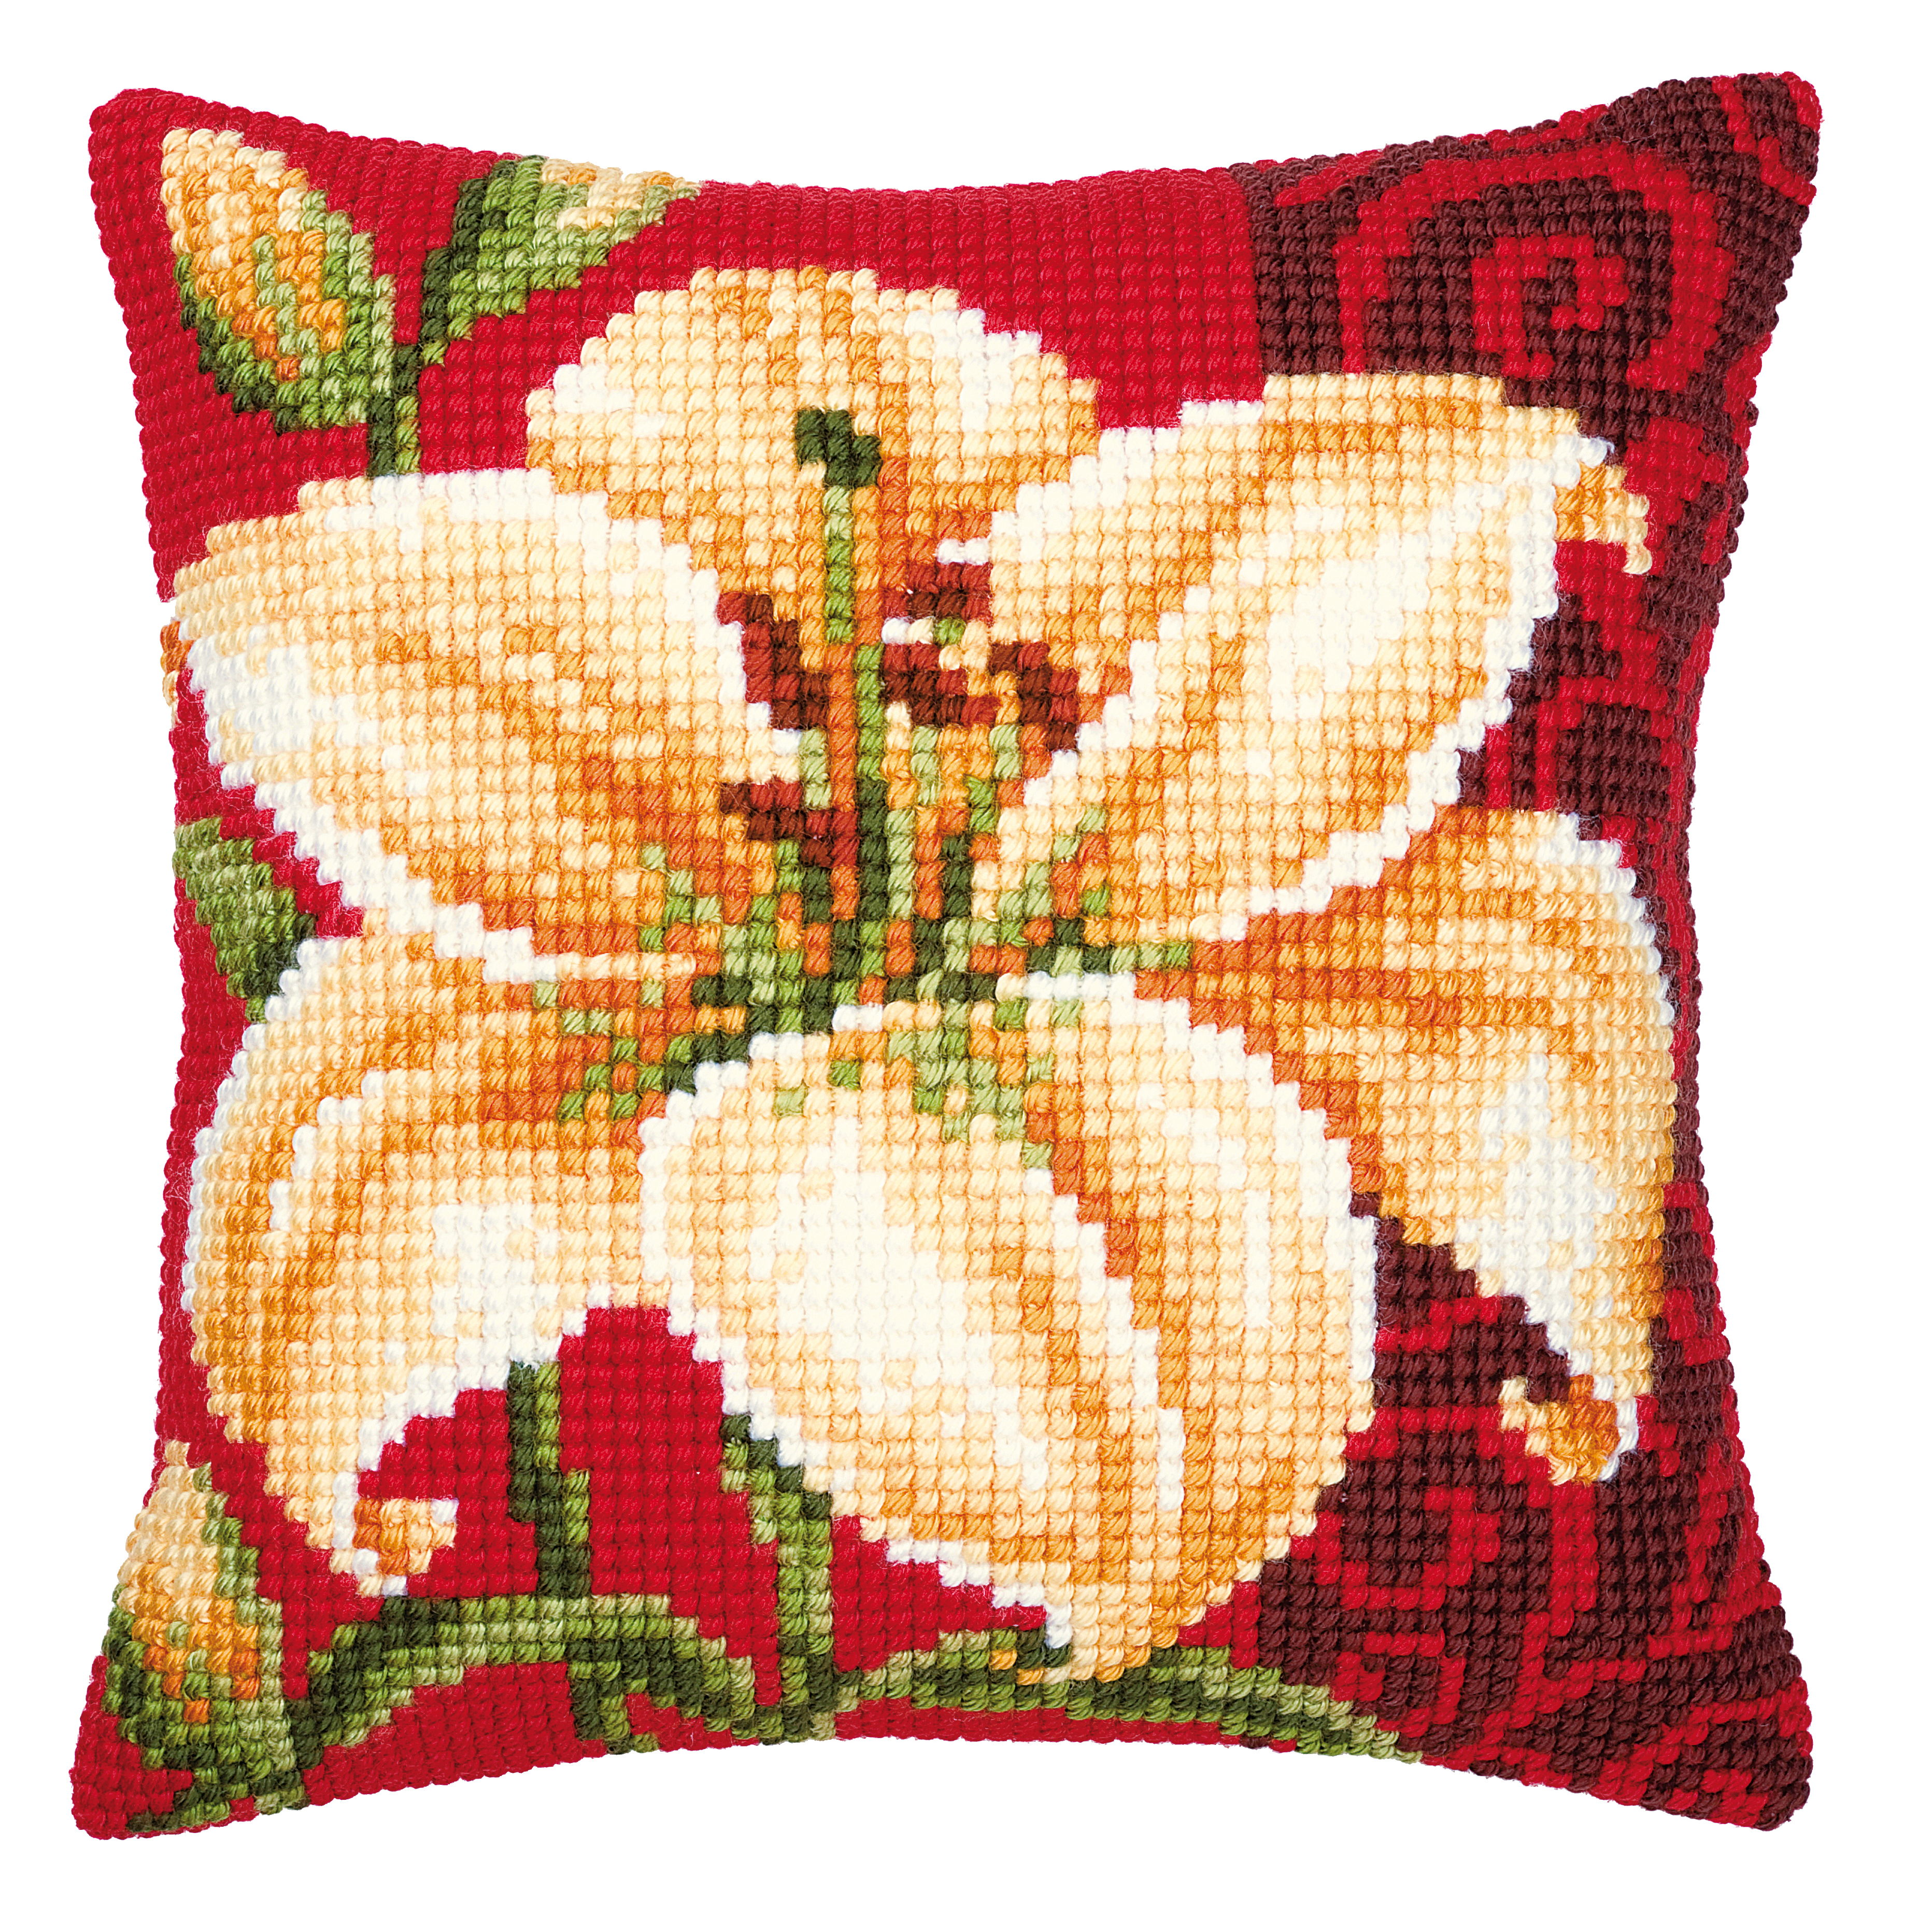 1x Cross Stitch Kit Coussin Tiger Lily Sewing Craft Outil Hobby Art Uk-afficher Le Titre D'origine